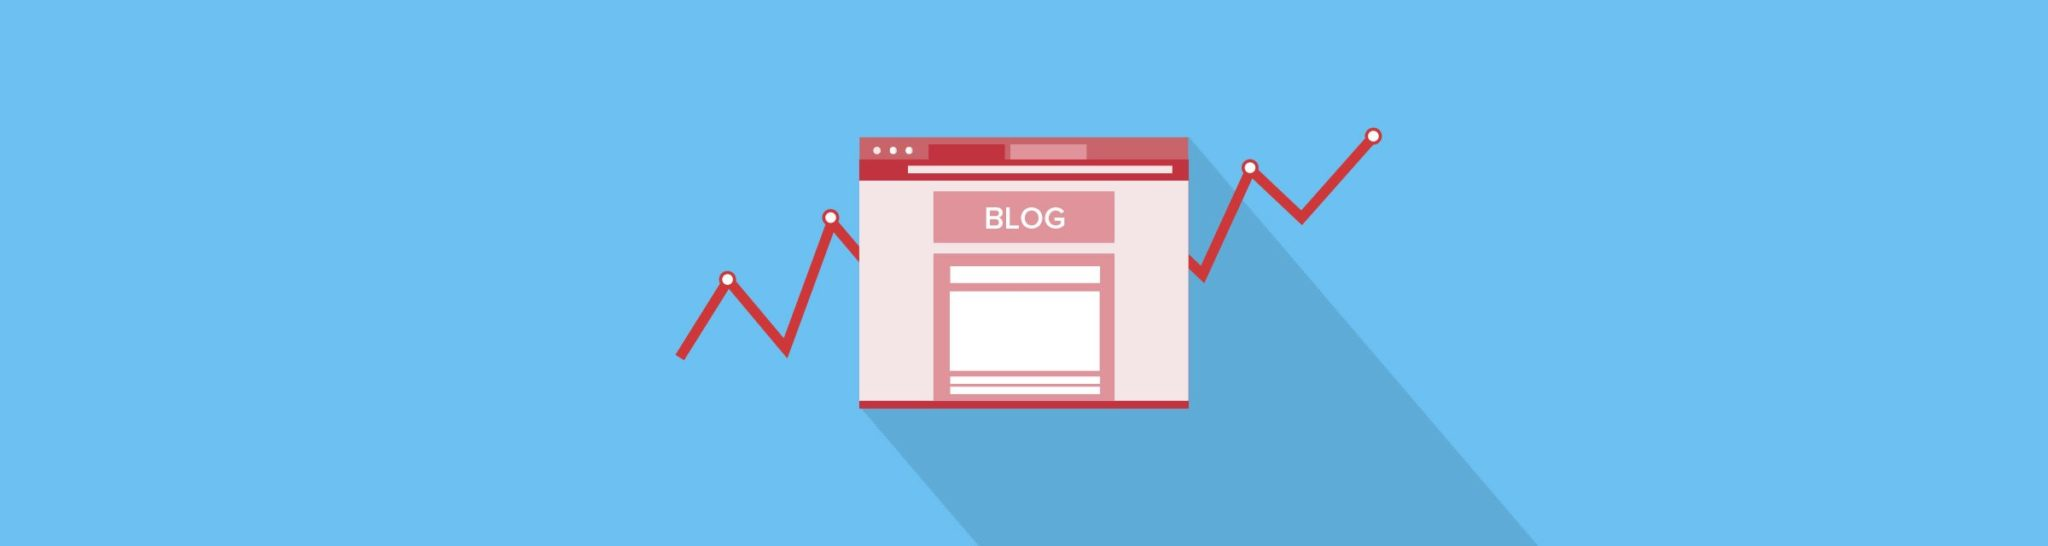 How Blogging Boosts Your Online Business - KickCharge